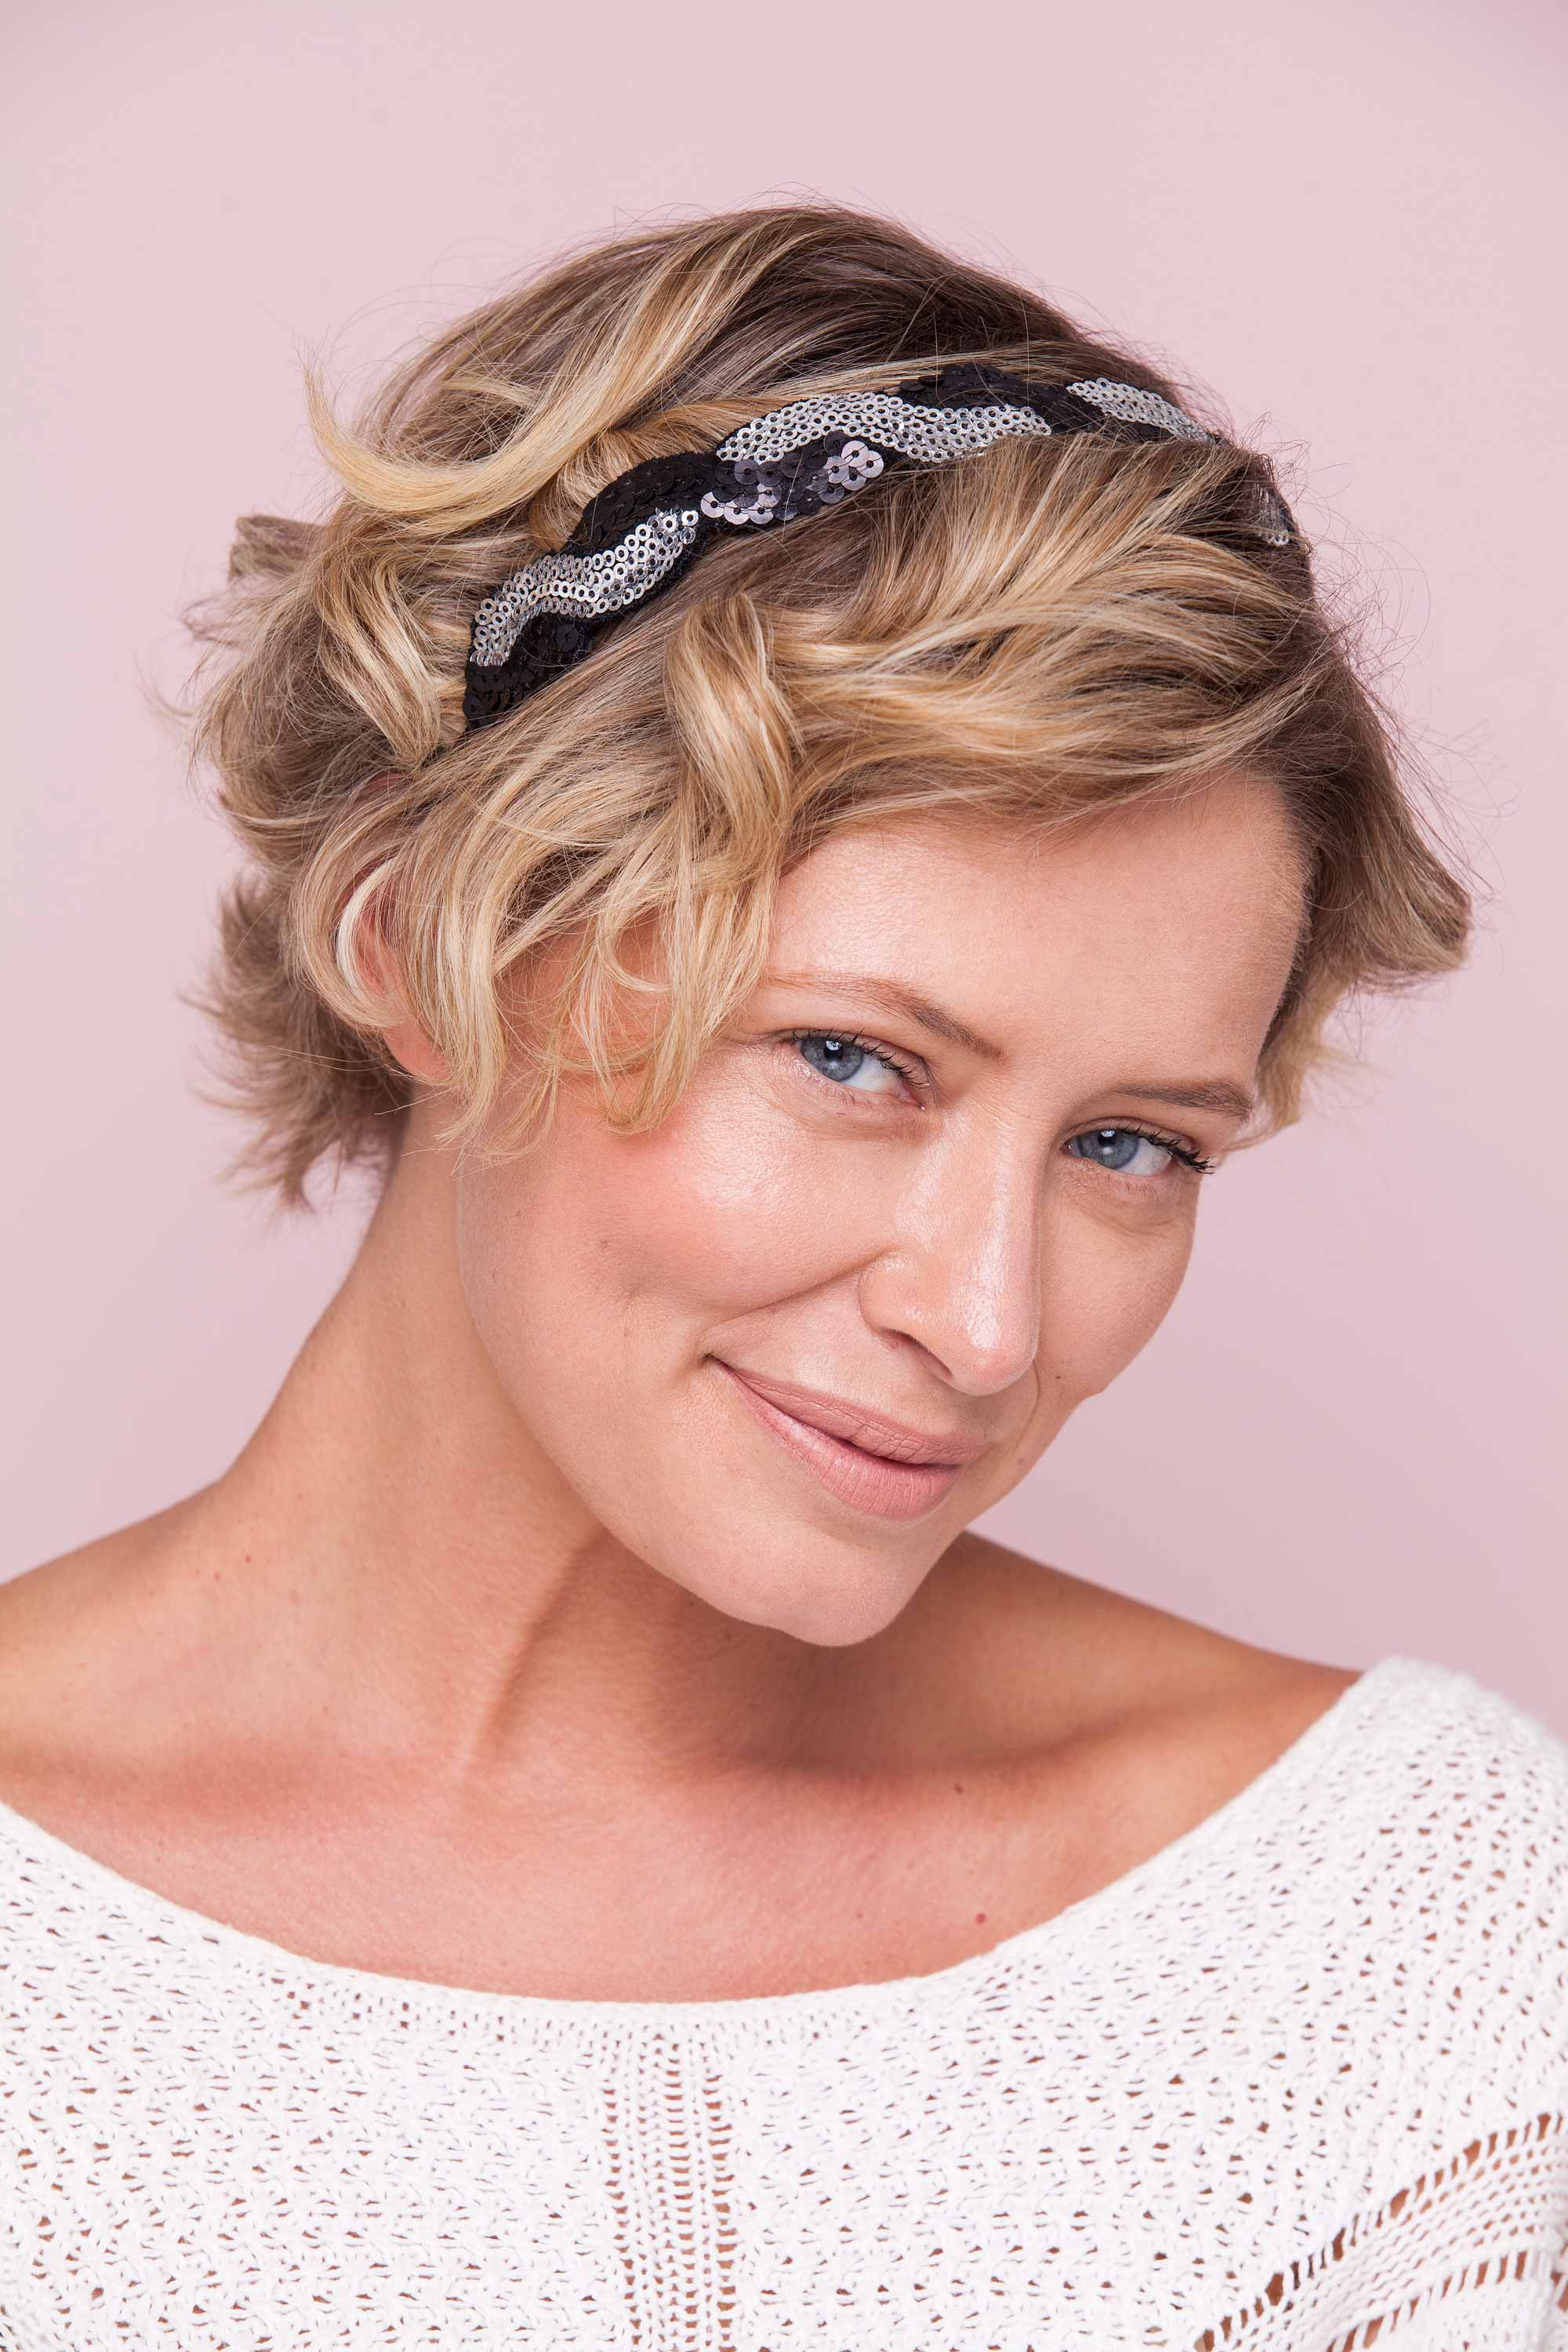 10 Headband Hairstyles For All Of The Parties Within Cute Short Hairstyles With Headbands (View 22 of 25)